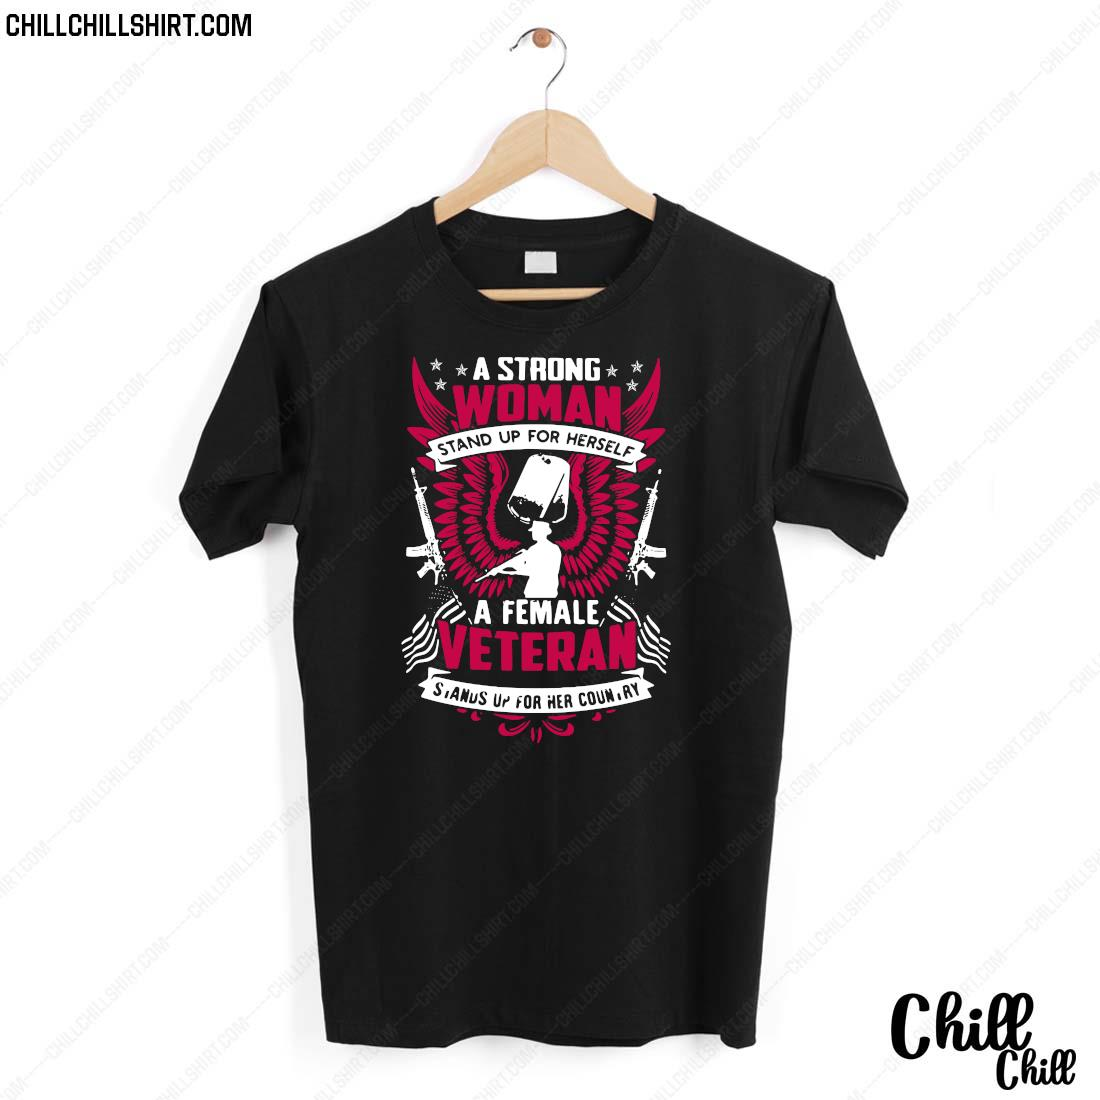 A Strong Woman Stand Up For Herself A Female Veteran Stands Up For Her Country Shirt